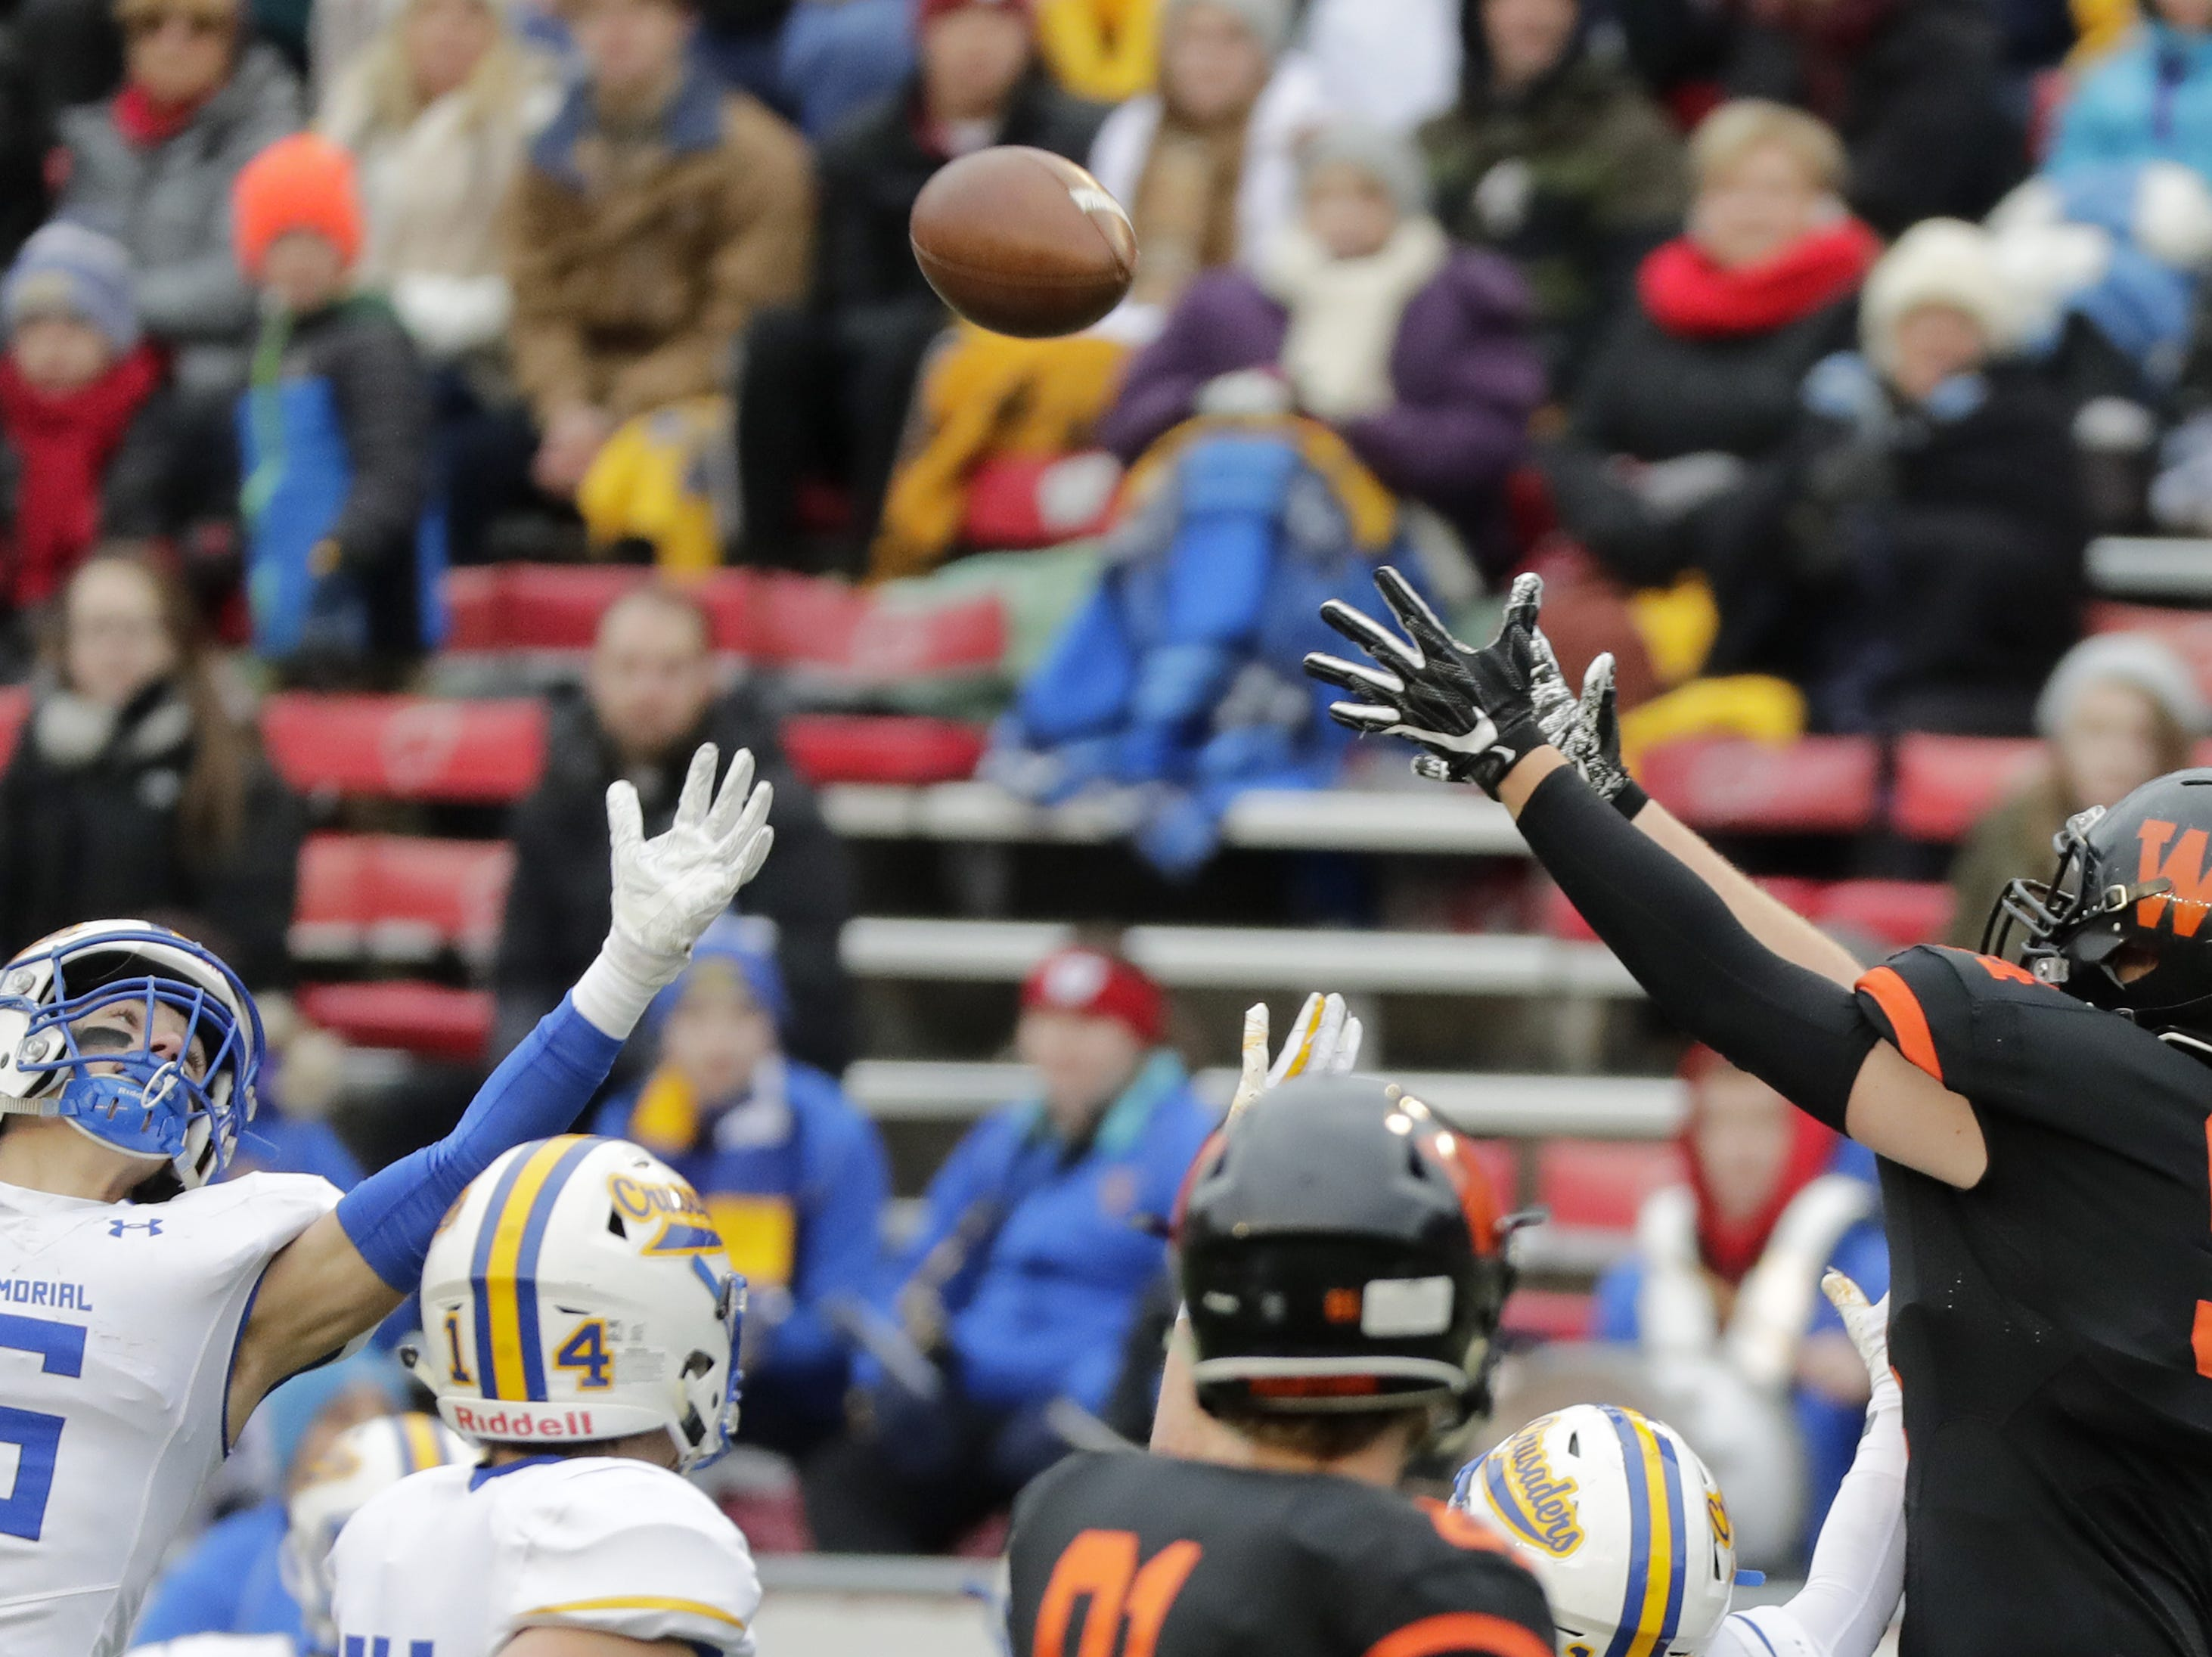 West De Pere's Billy Wyatt (94) catches a pass against Catholic Memorial in the WIAA Division 3 championship game at Camp Randall Stadium on Friday, November 16, 2018 in Madison, Wis.